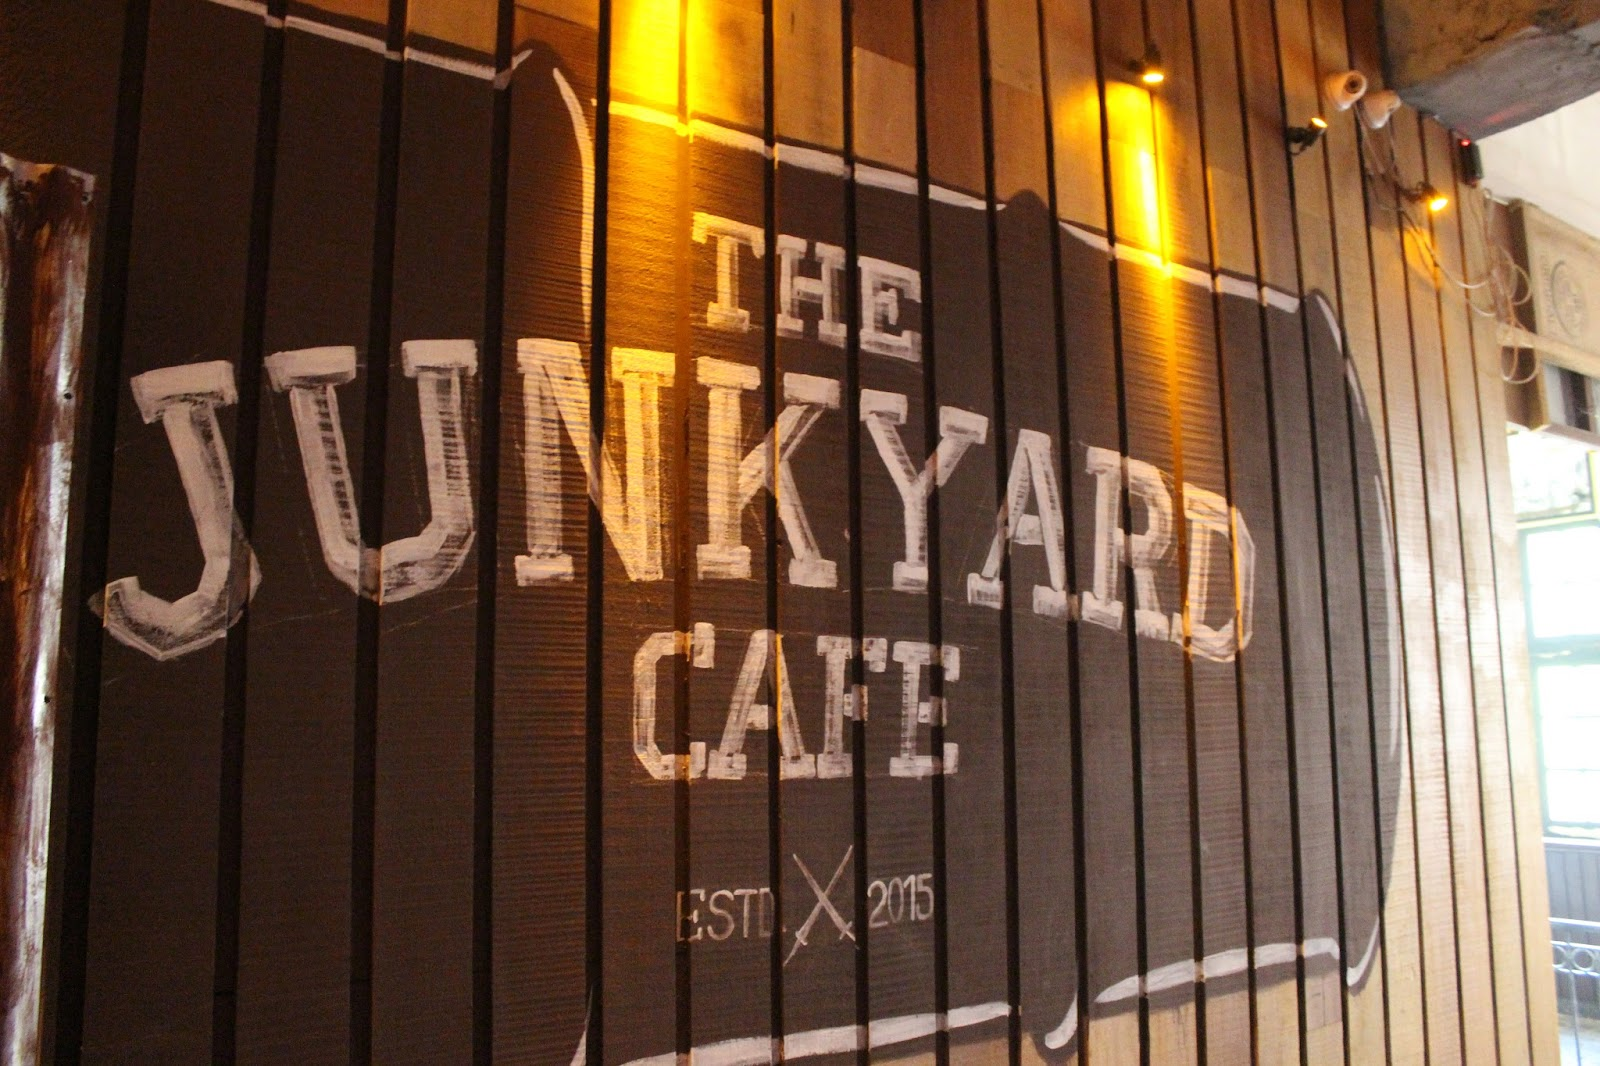 The Junkyard Cafe - Connaught Place - New Delhi Image